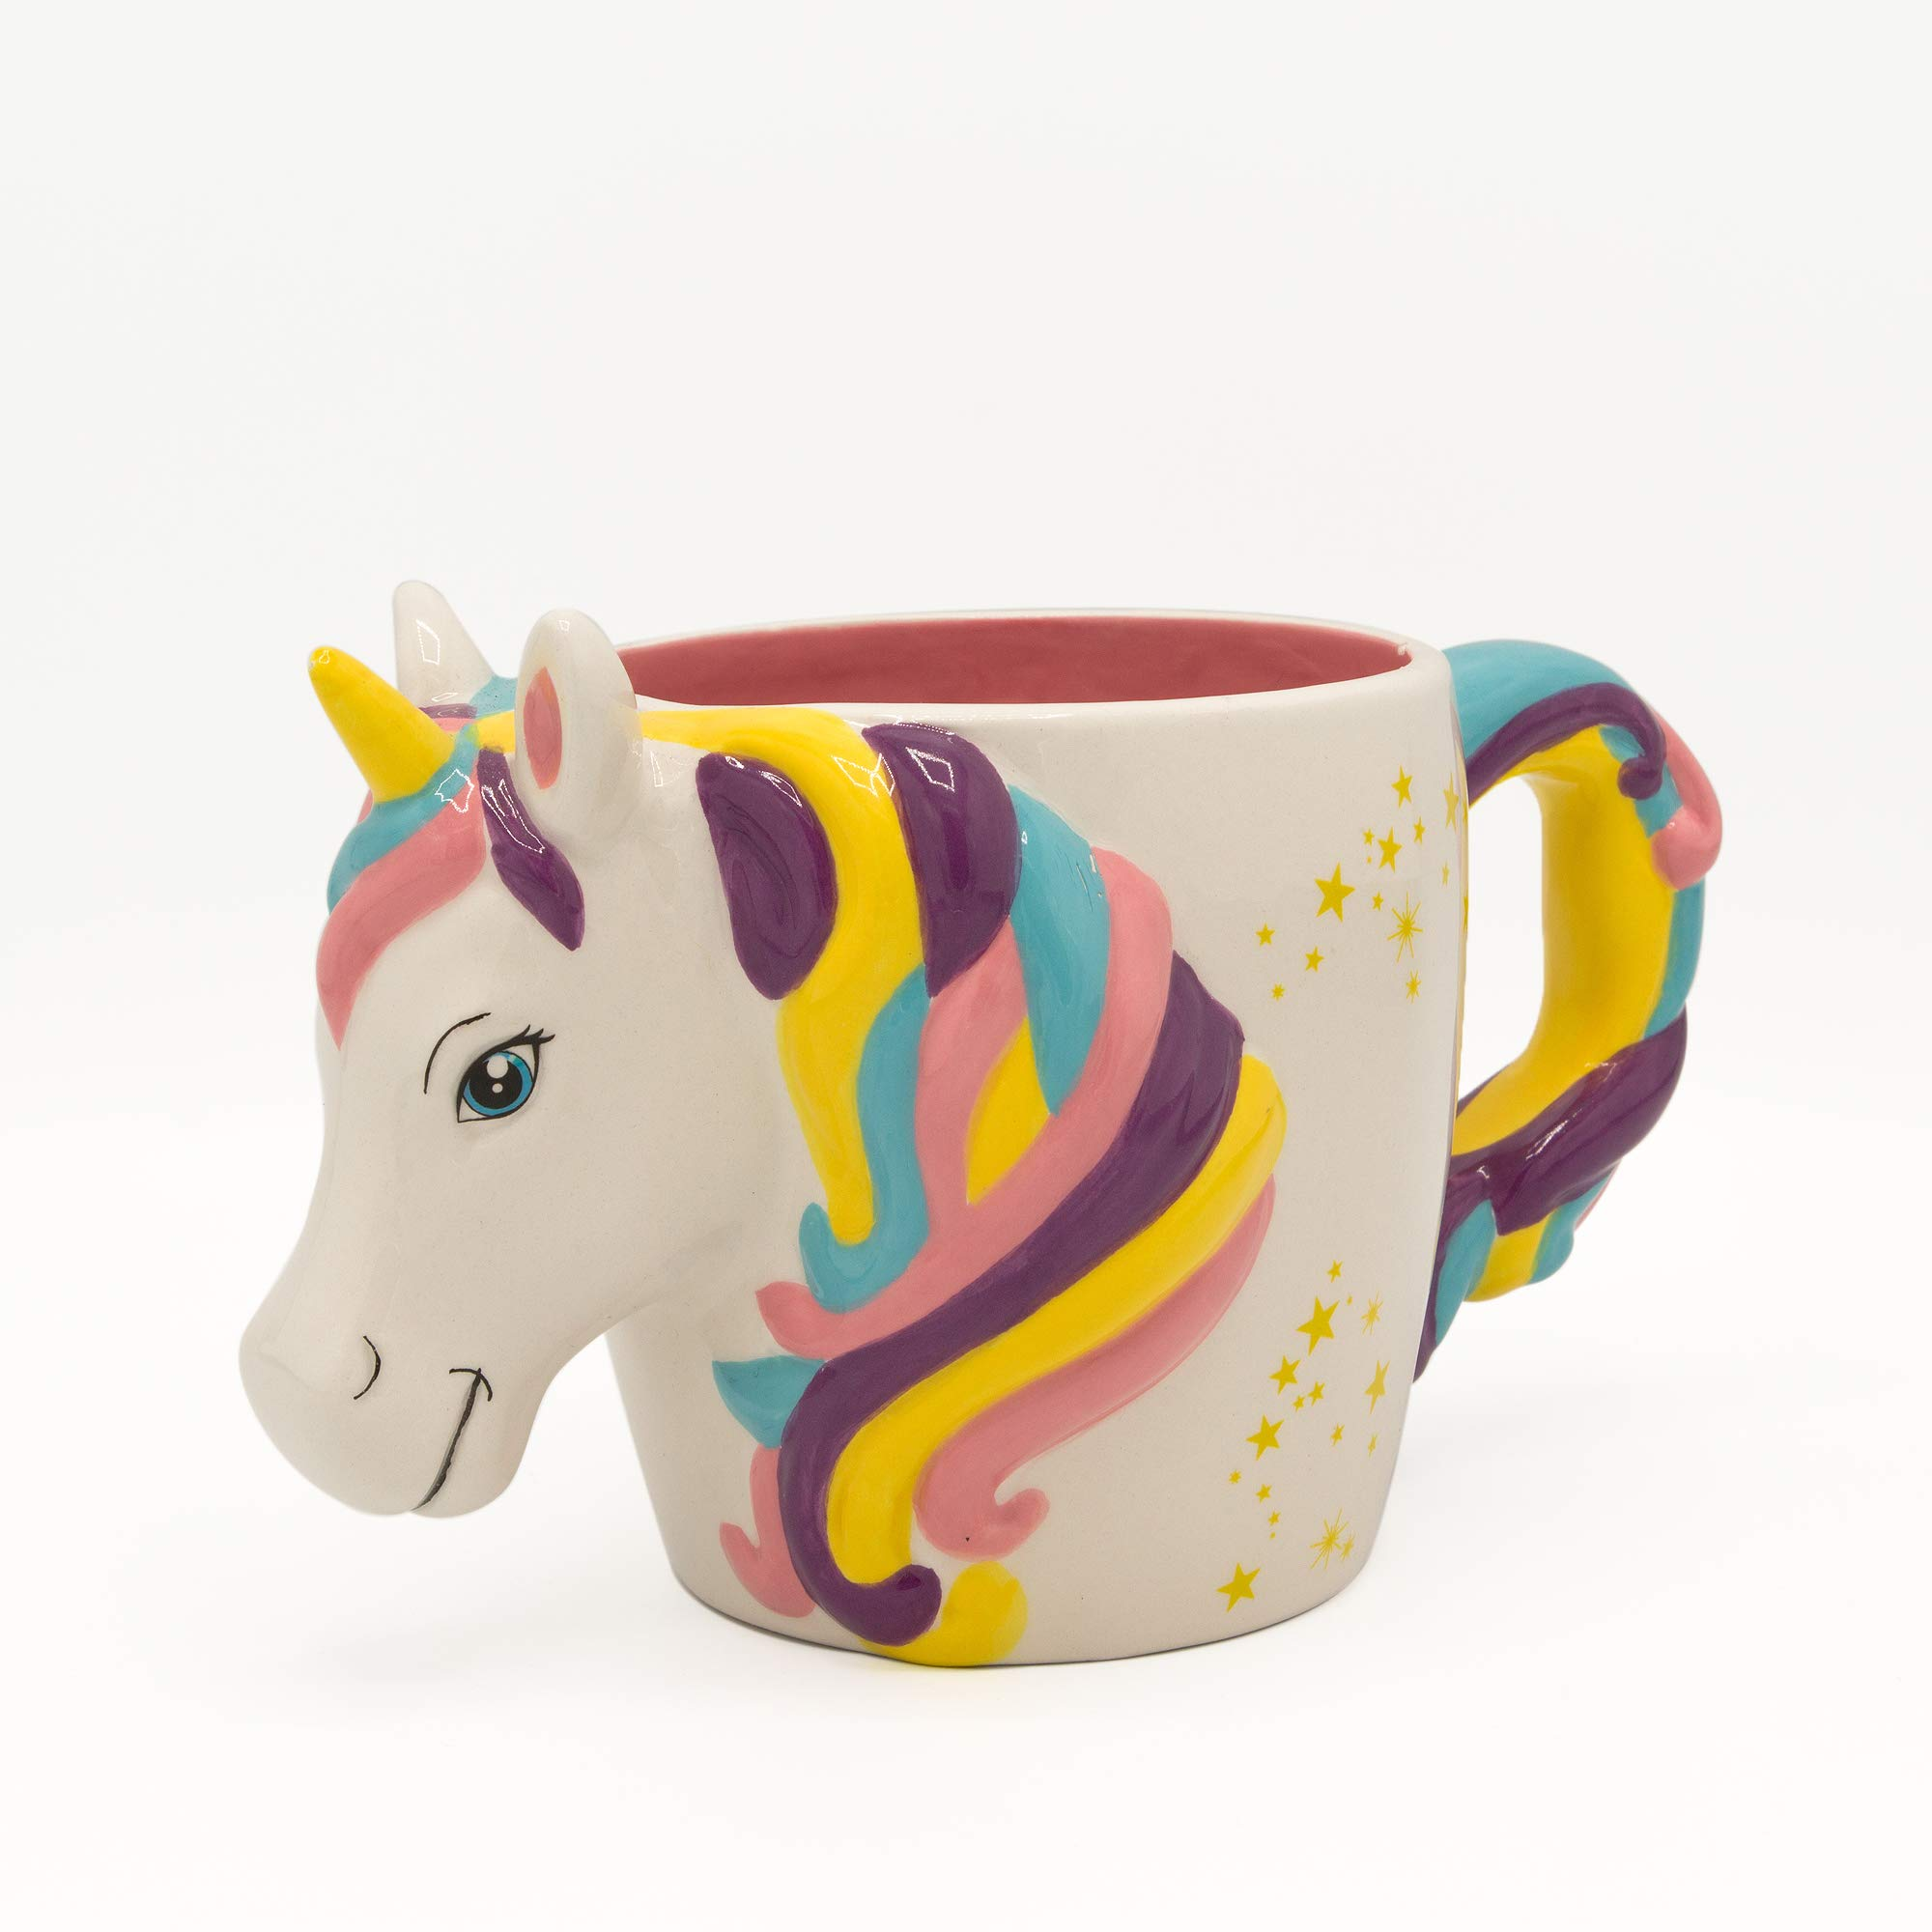 Silver Buffalo NL22553D Unicorn Shaped Ceramic 3D Sculpted Mug, 22-Ounce, Multicolored